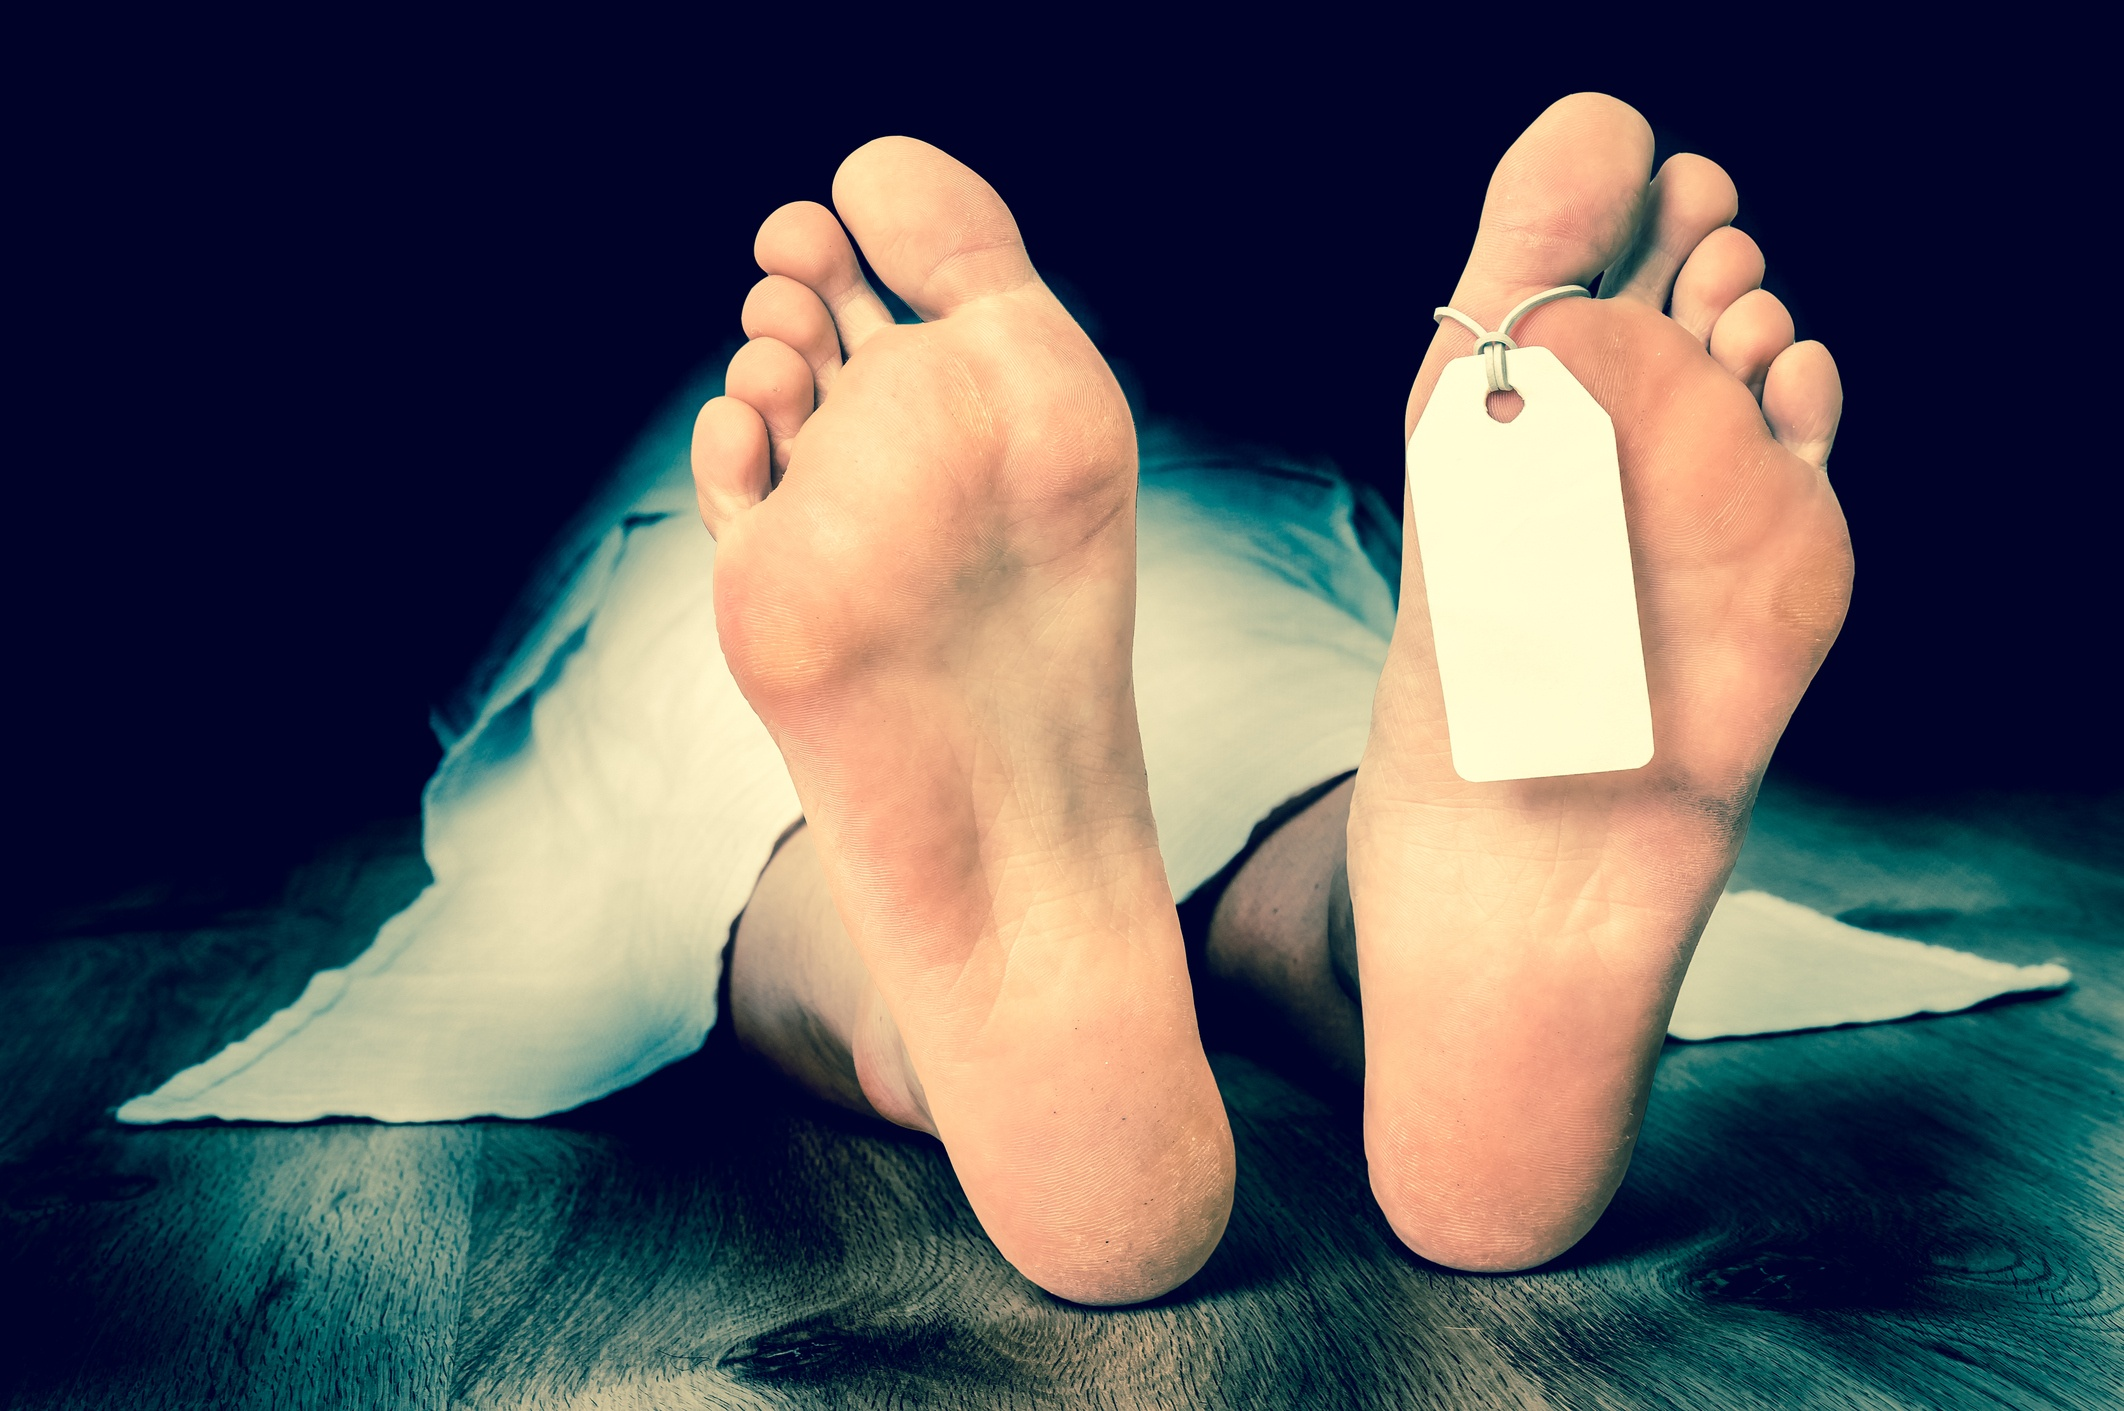 Dead body with blank tag on feet